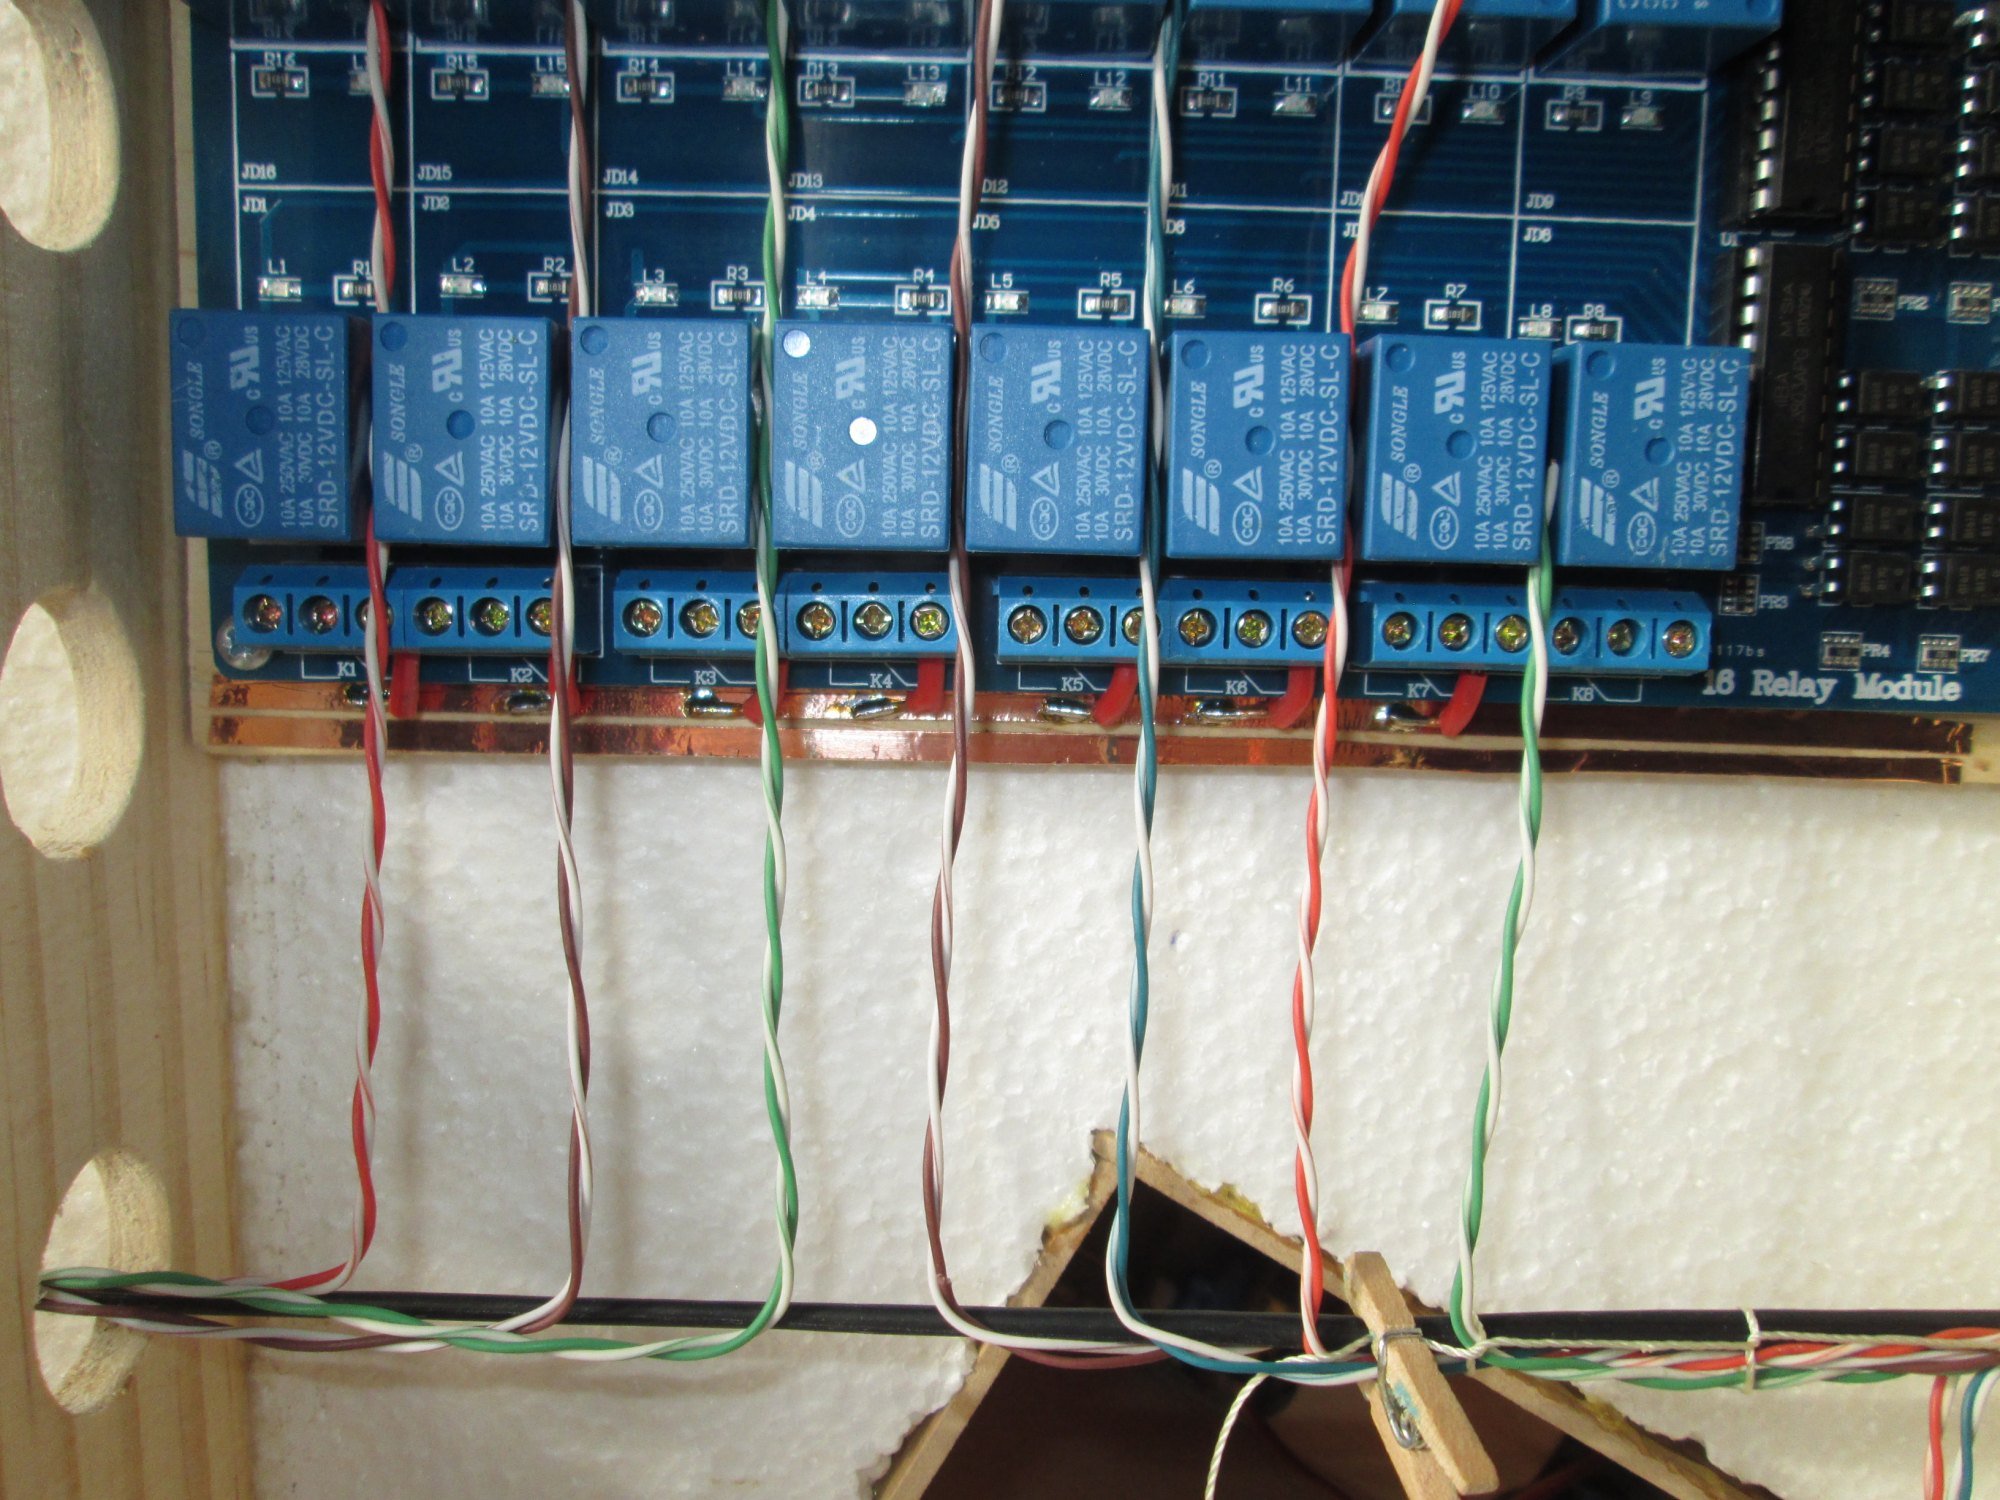 Wiring and lacing - Utrainia